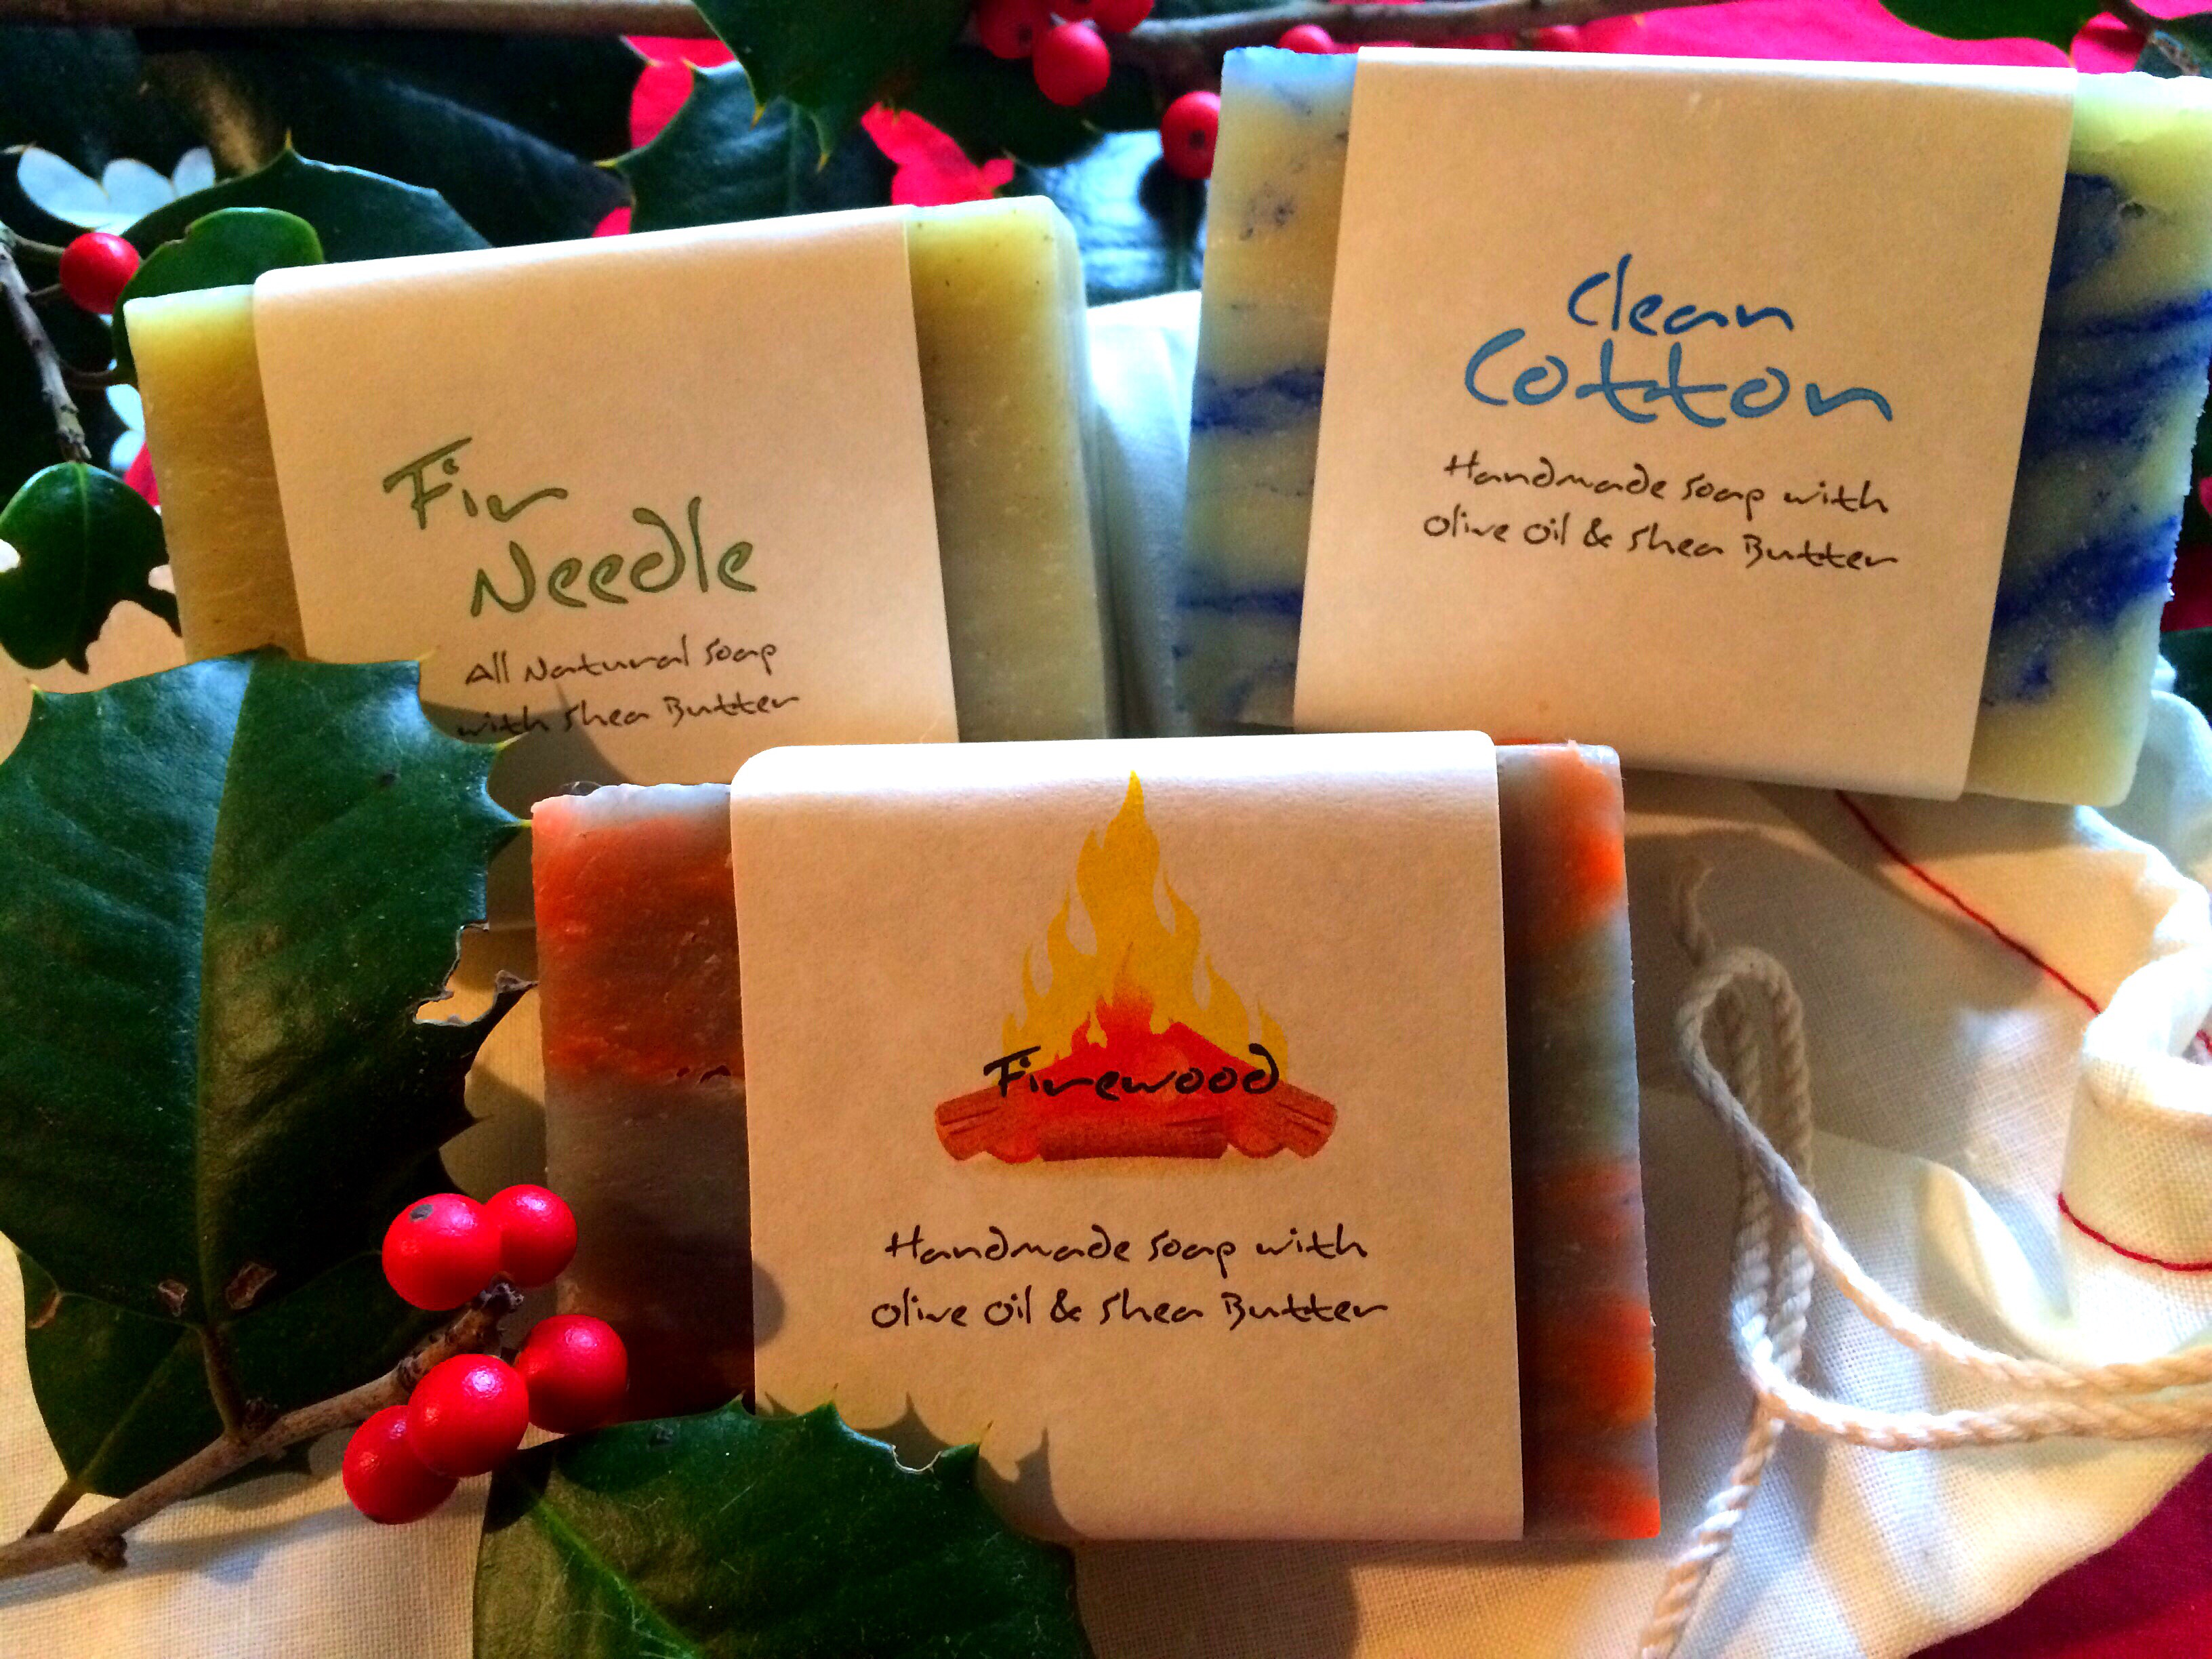 Kosmos Handmade Natural Soaps for the Festive Season